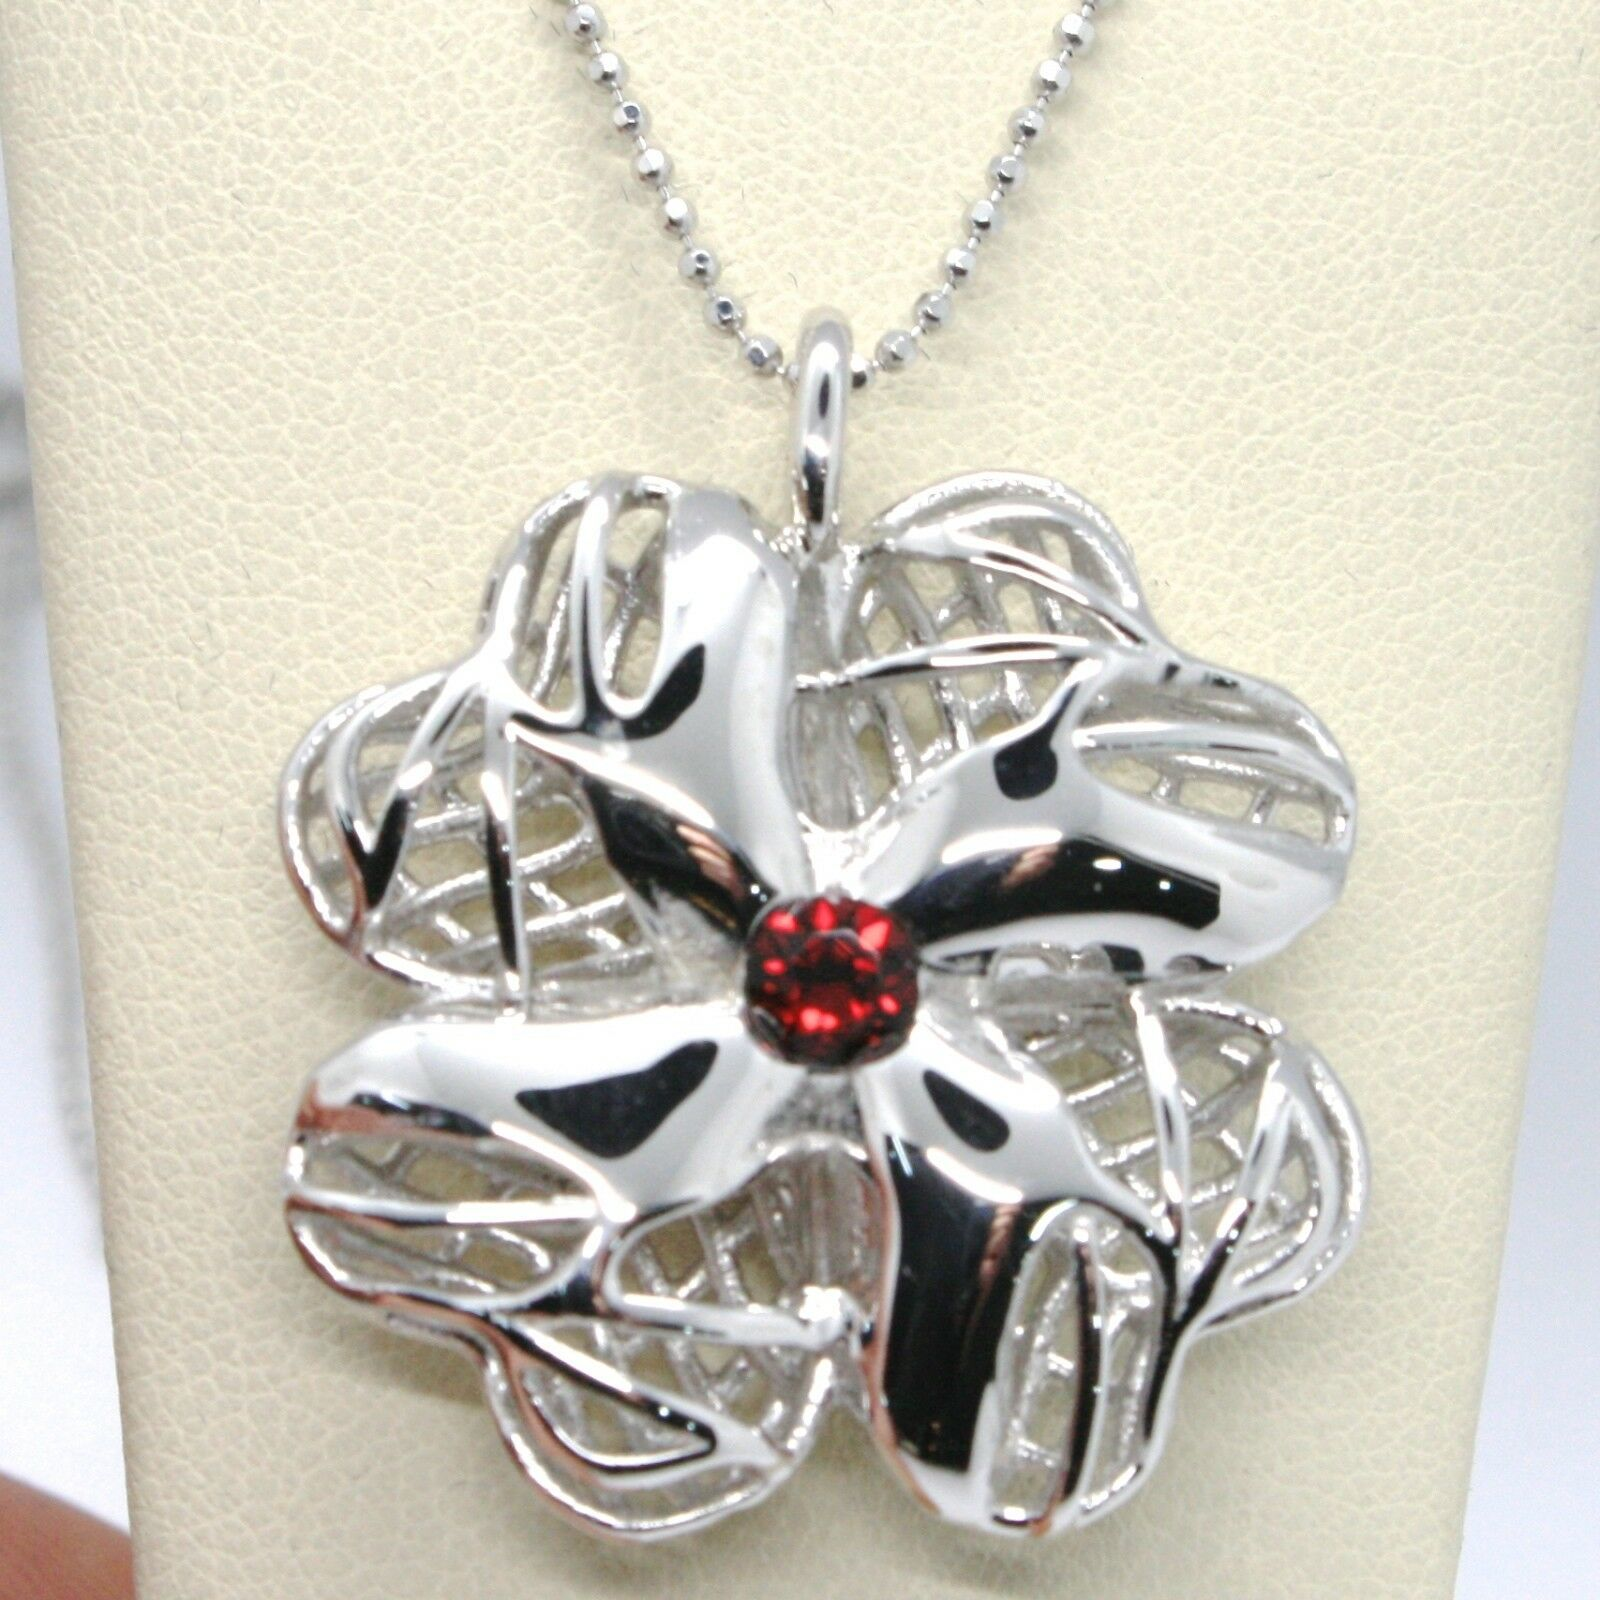 Necklace Silver 925 with Pendant Four-Leaf Clover by Maria Ielpo , Made in Italy